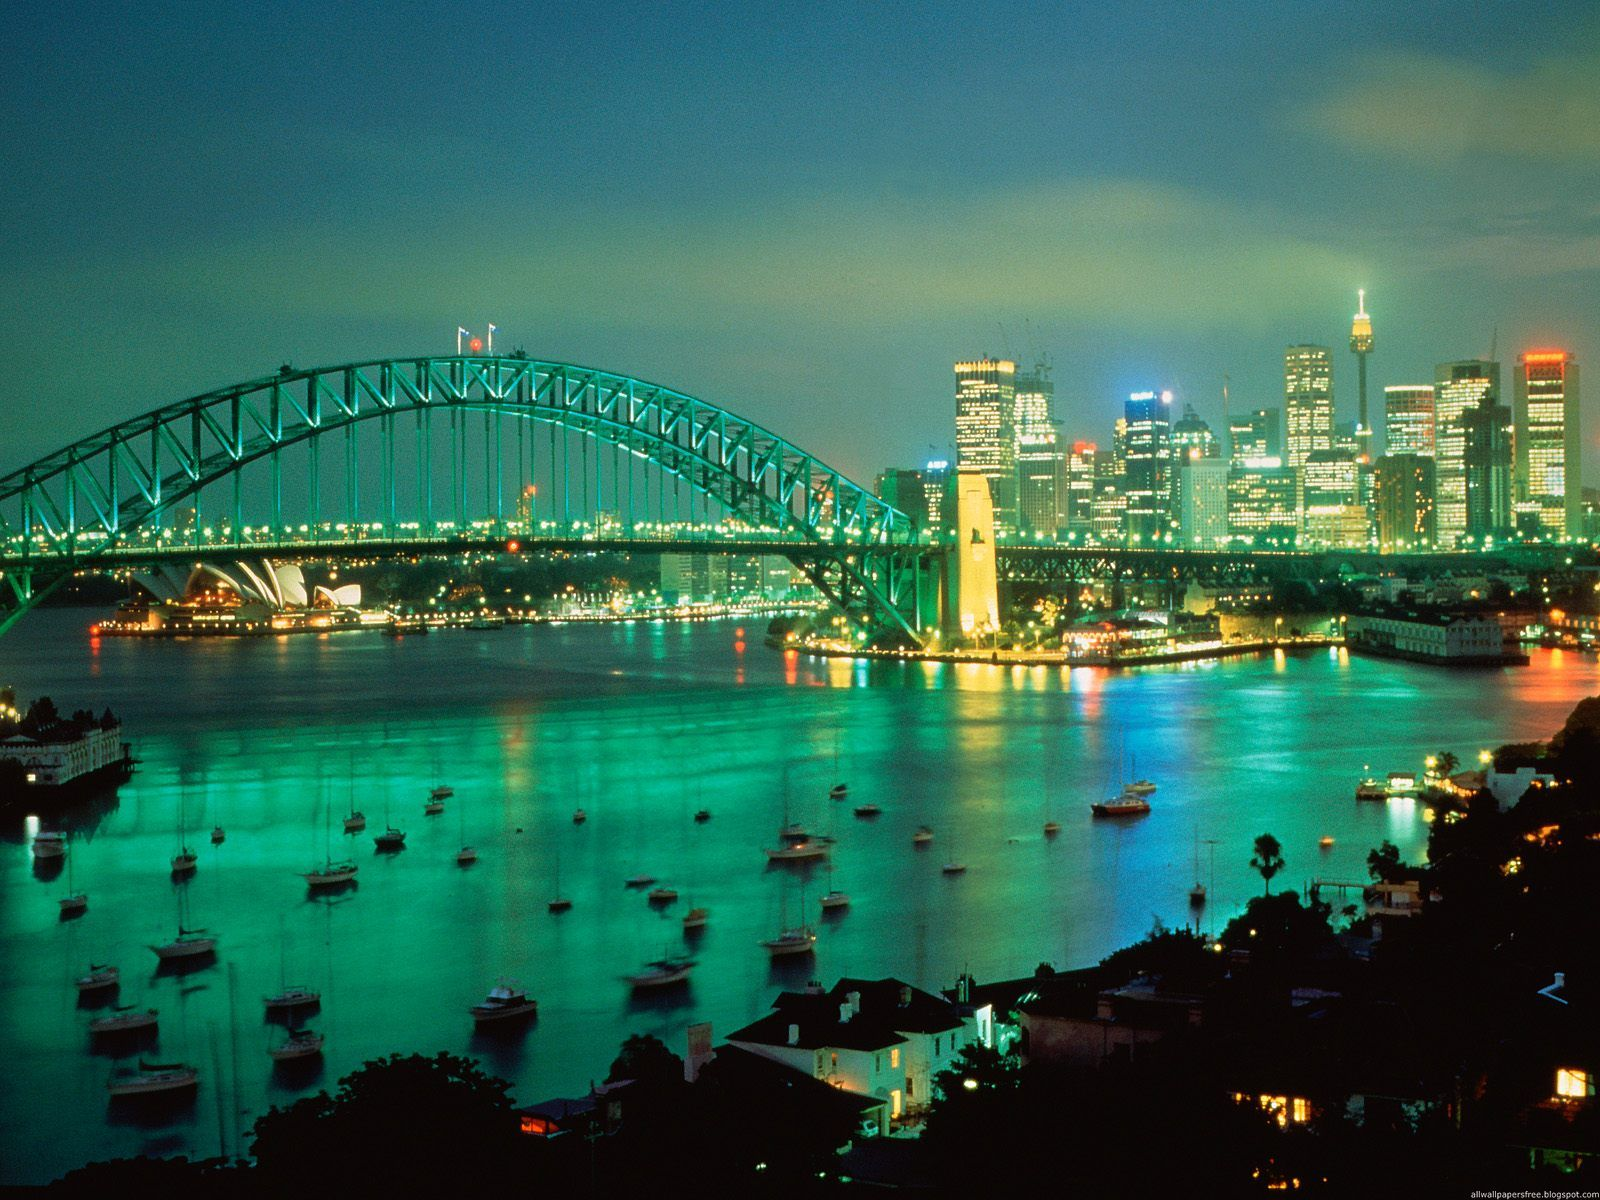 Sydney New South Whales Australia Images Sydney Hd Wallpaper And Background Photos 32662518